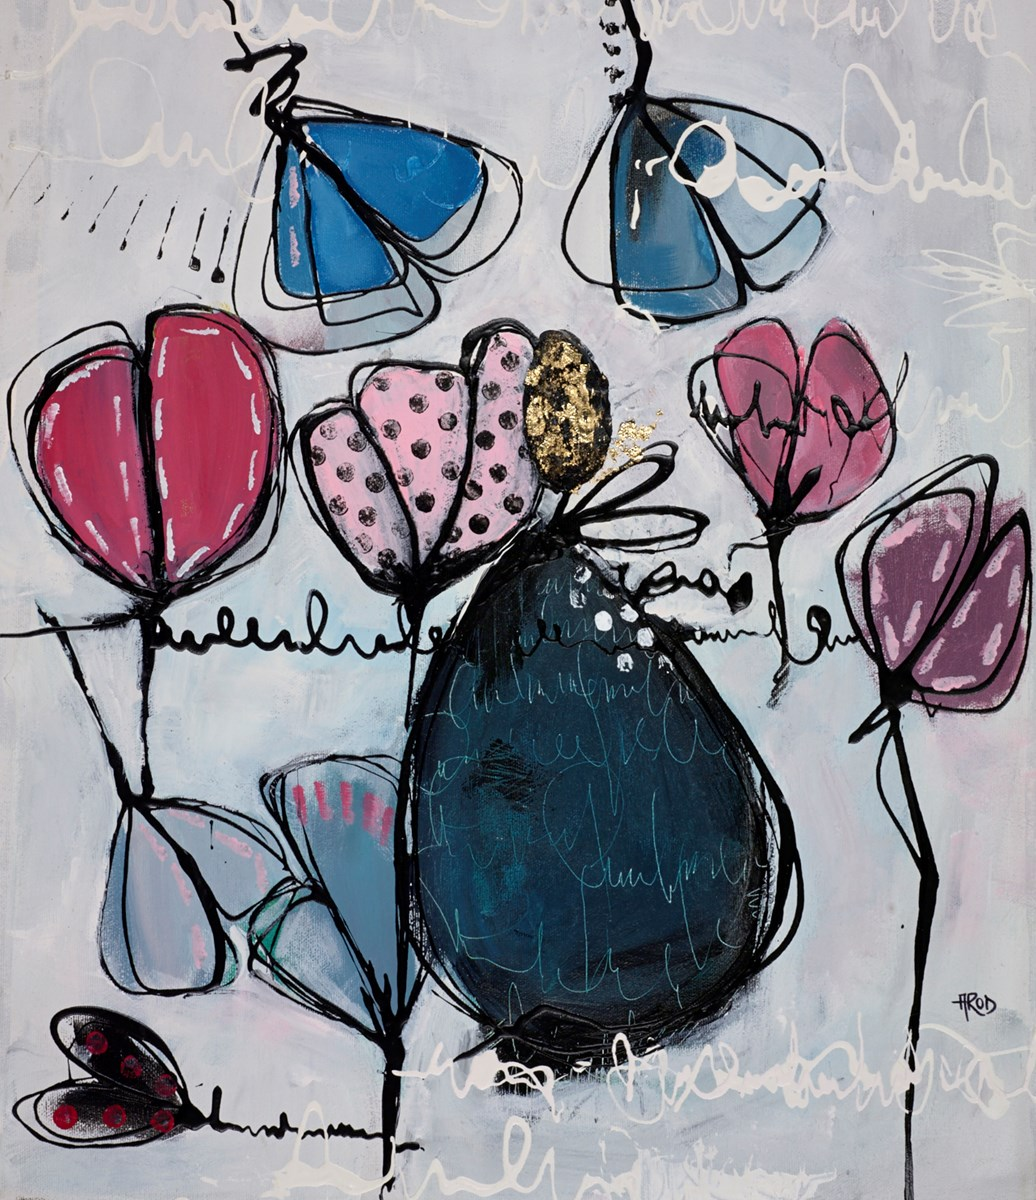 Des Souvenirs Plein la Tete by annie rodrigue -  sized 15x19 inches. Available from Whitewall Galleries